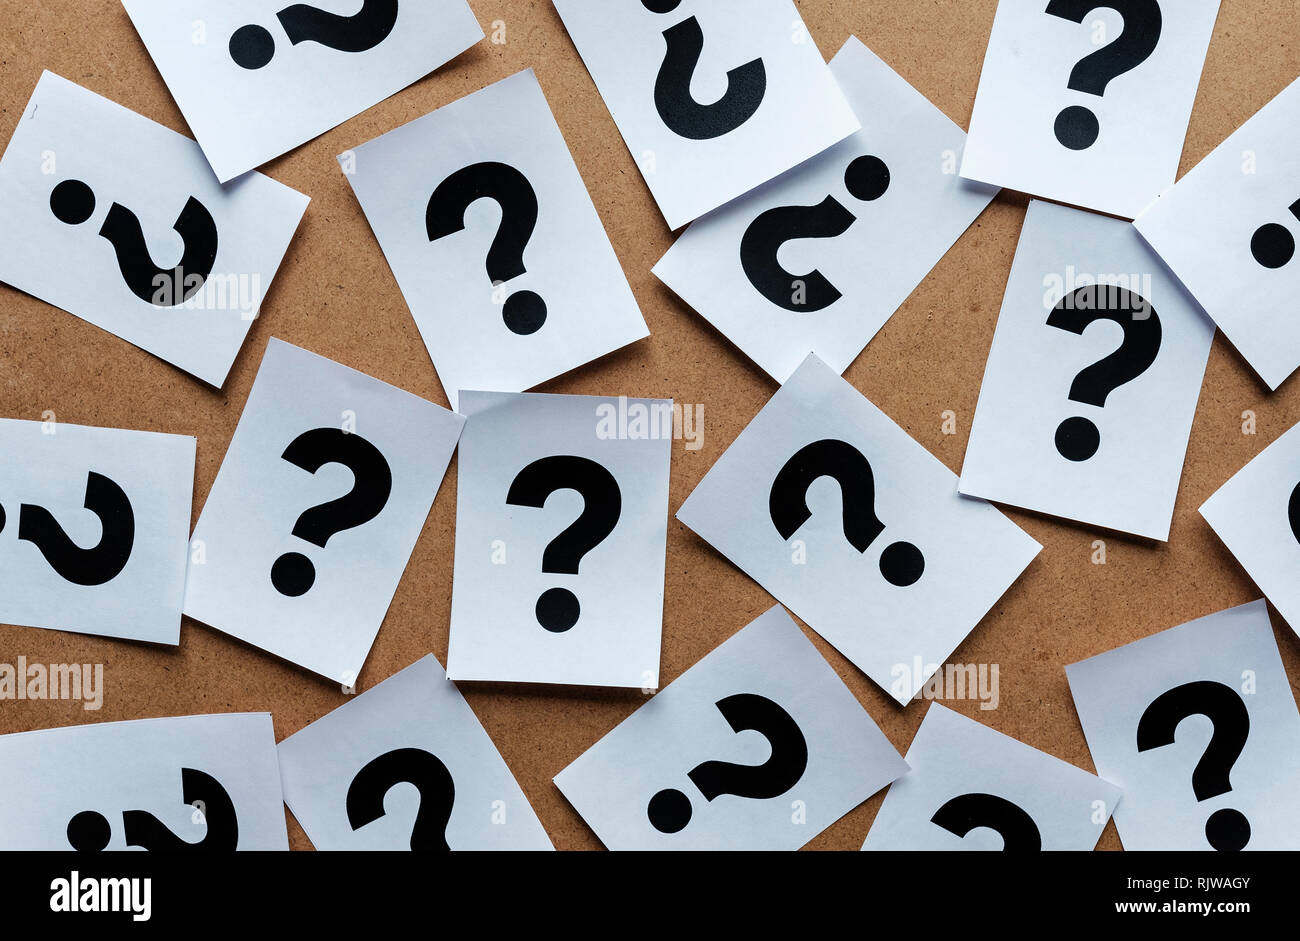 question marks on paper cards scattered randomly over a wooden background in a conceptual image Stock Photo